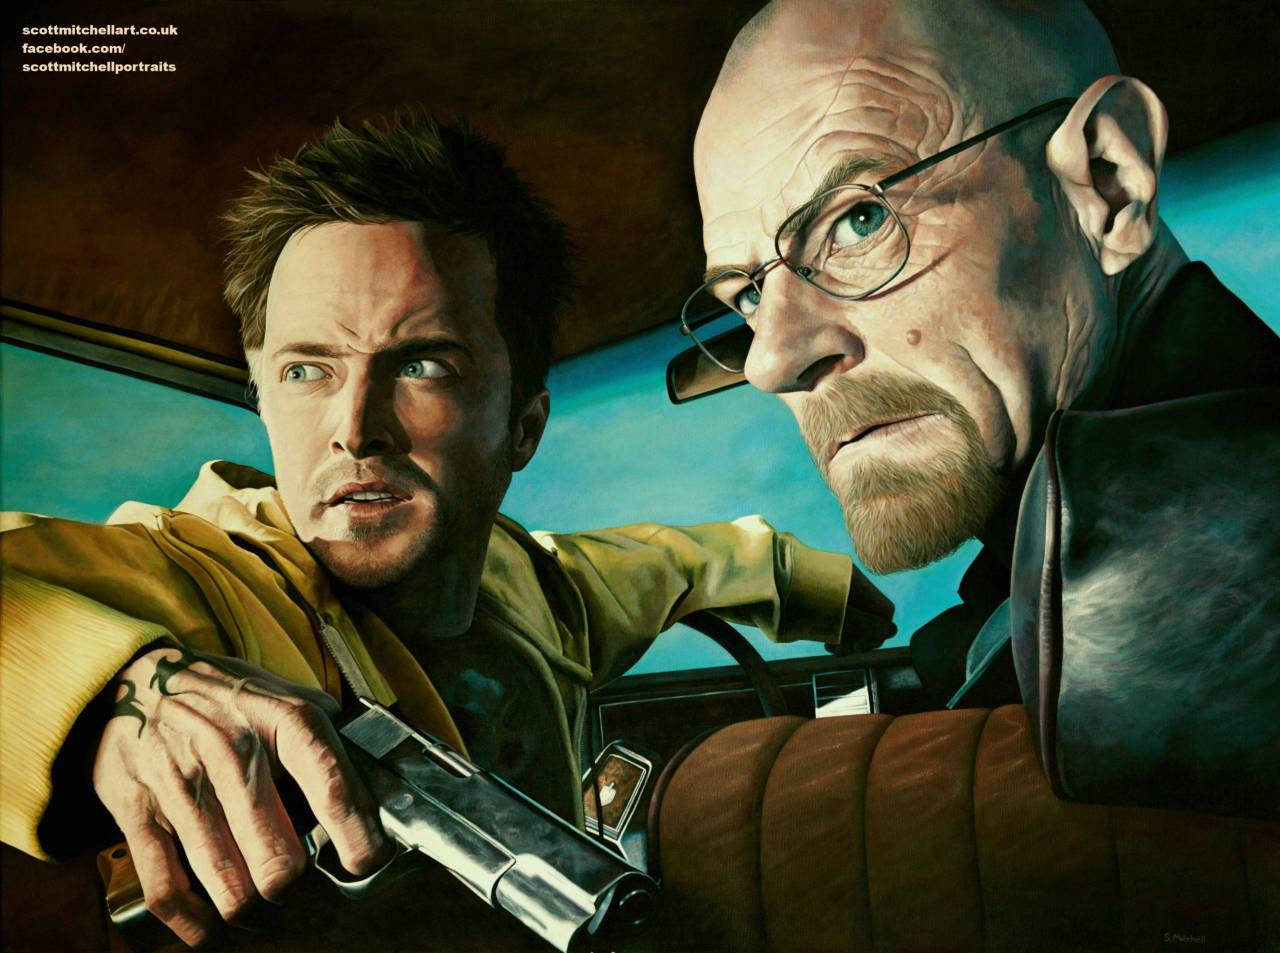 Breaking Bad, by Scott Mitchell